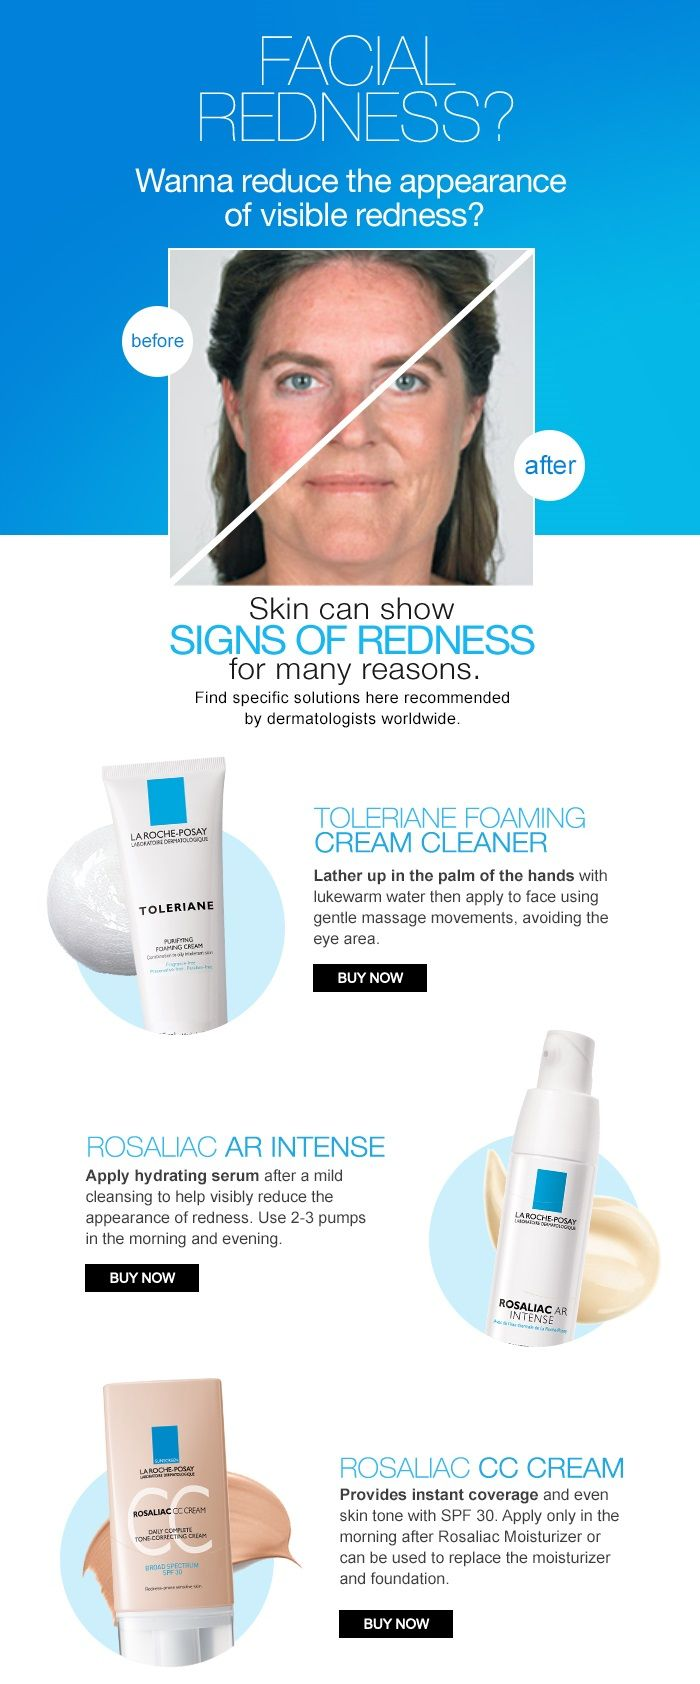 Rosaliac Ar Intense For Visible Facial Redness La Roche Posay In 2020 Redness Skincare For Oily Skin Skin Care Solutions